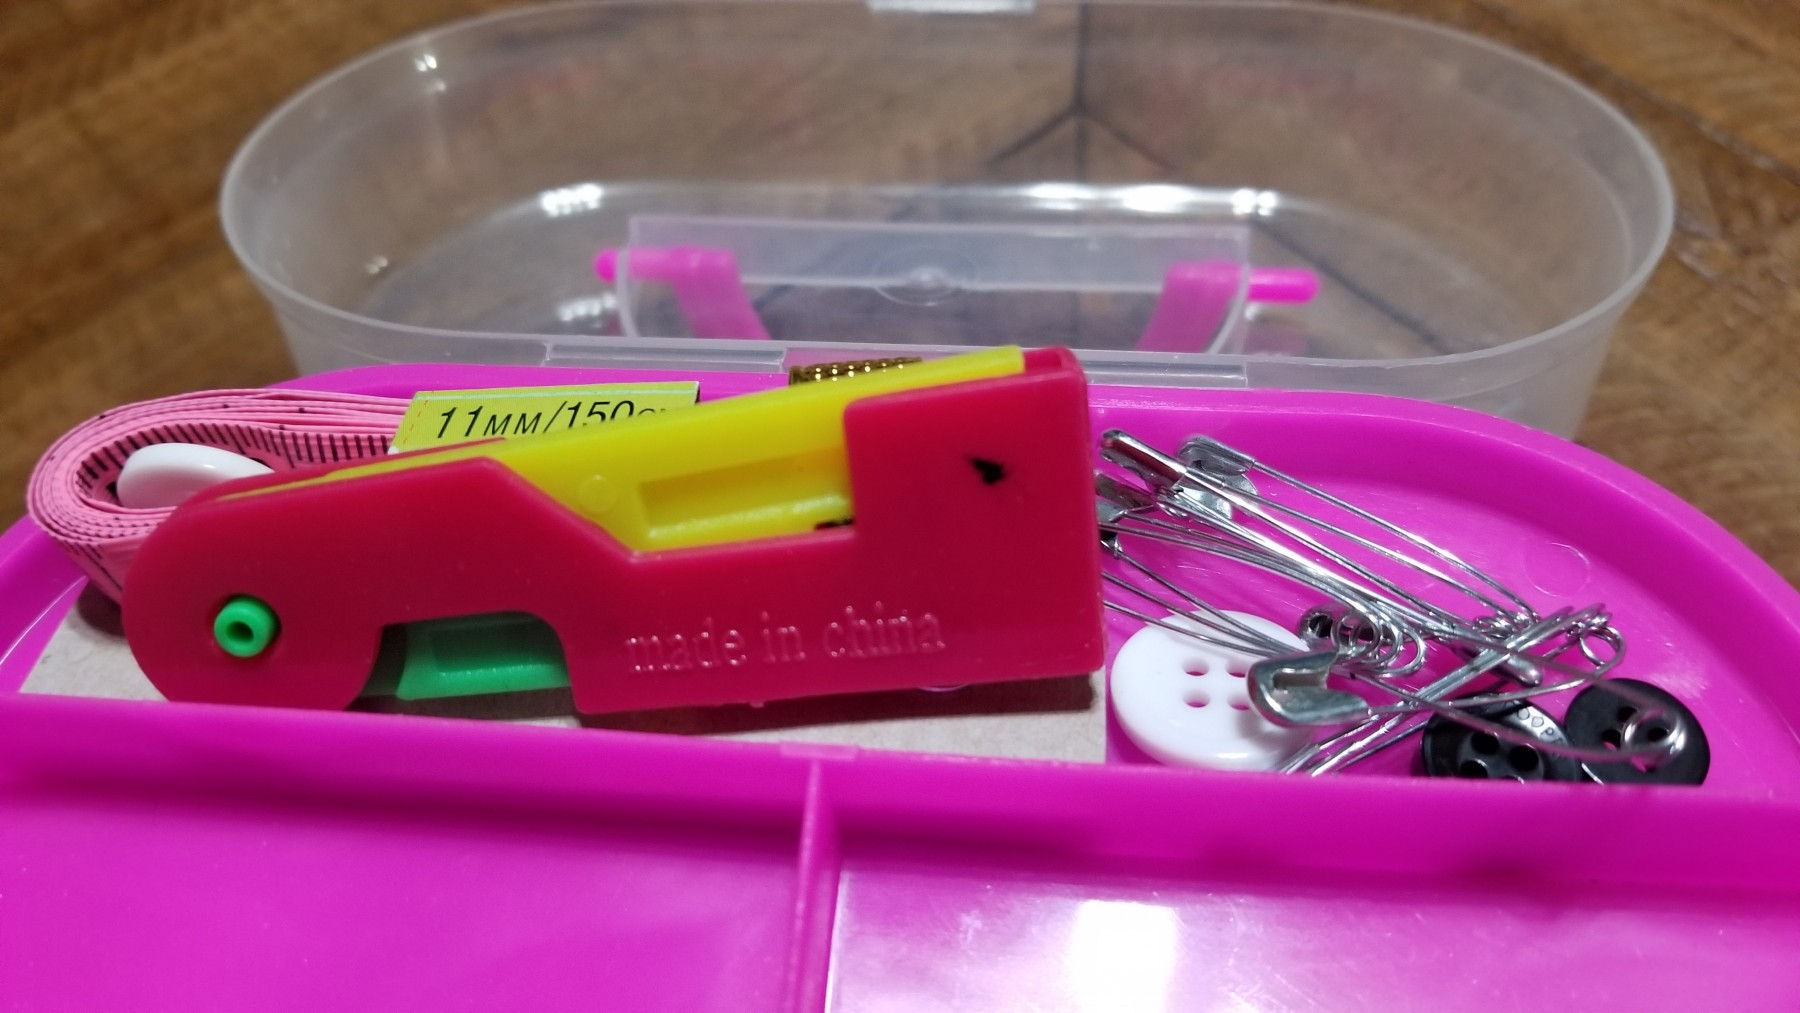 Convenient collection of sewing tools